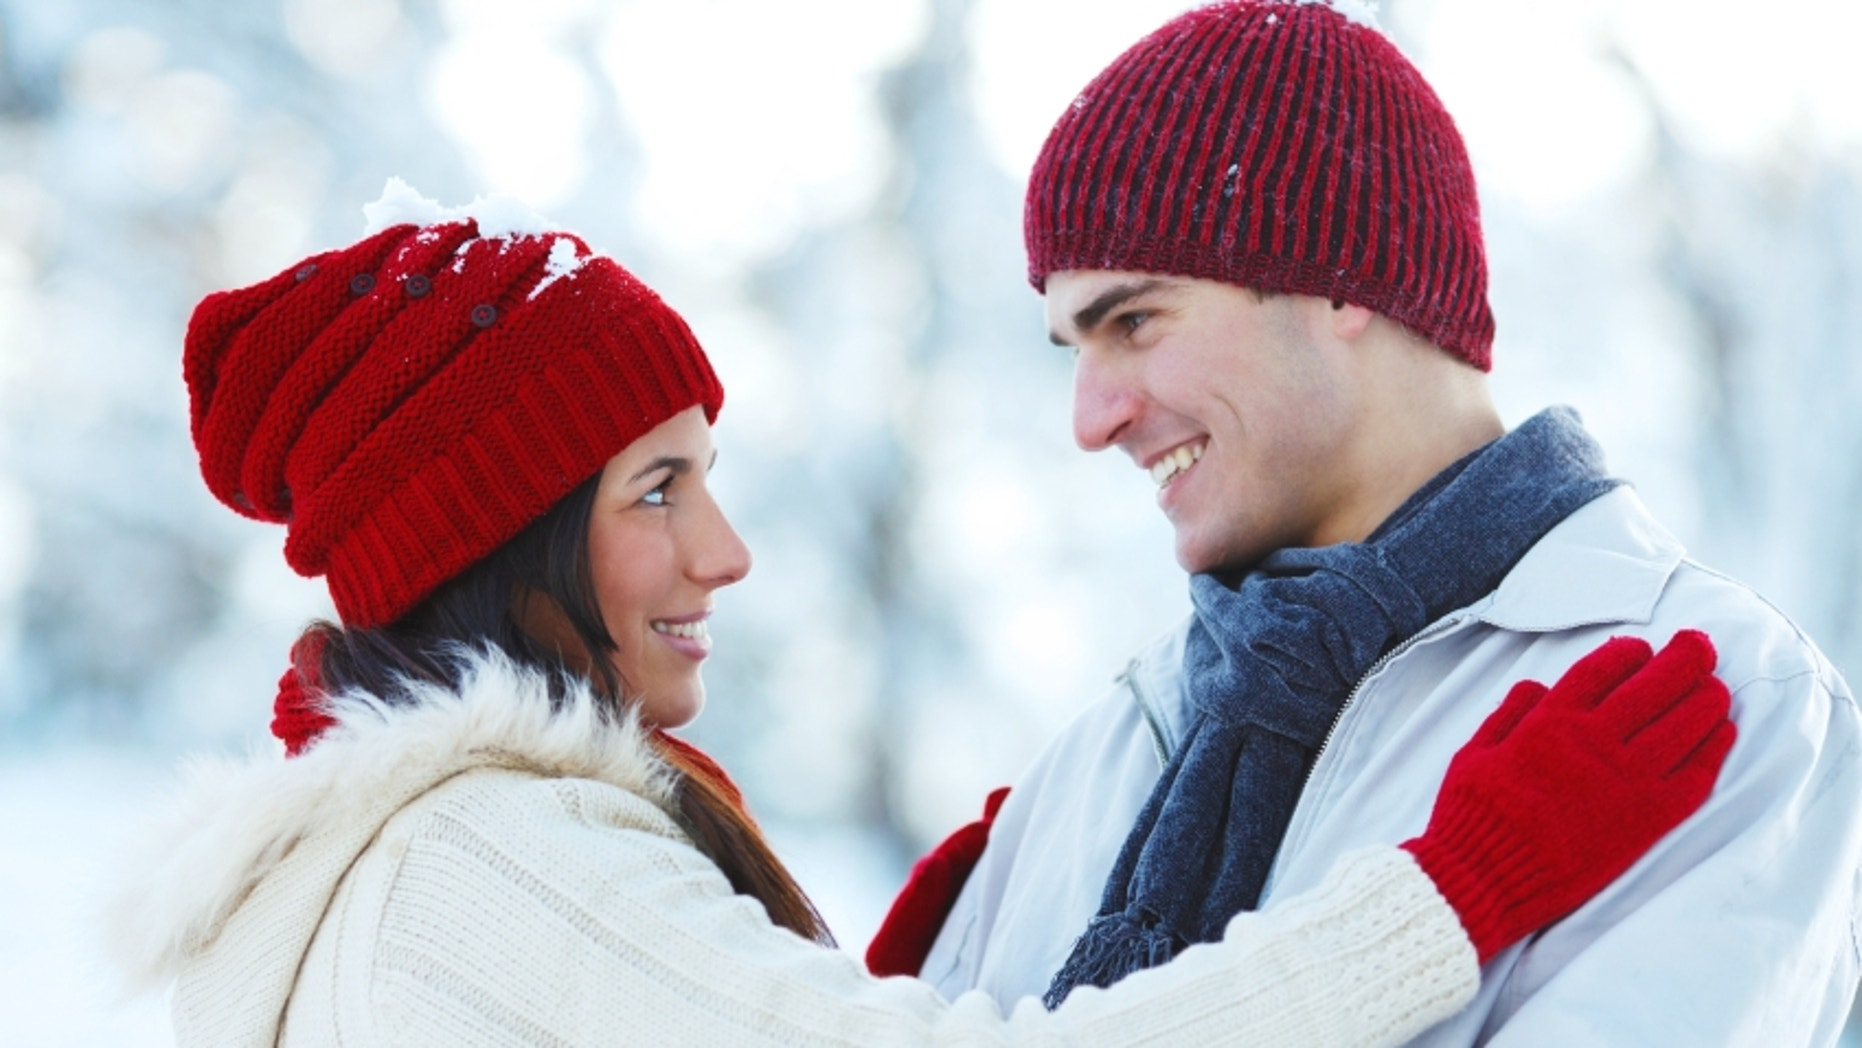 Beautiful young couple wearing red knit hats. They are looking at each other.   [url=http://www.istockphoto.com/search/lightbox/9786786][img]http://dl.dropbox.com/u/40117171/couples.jpg[/img][/url]